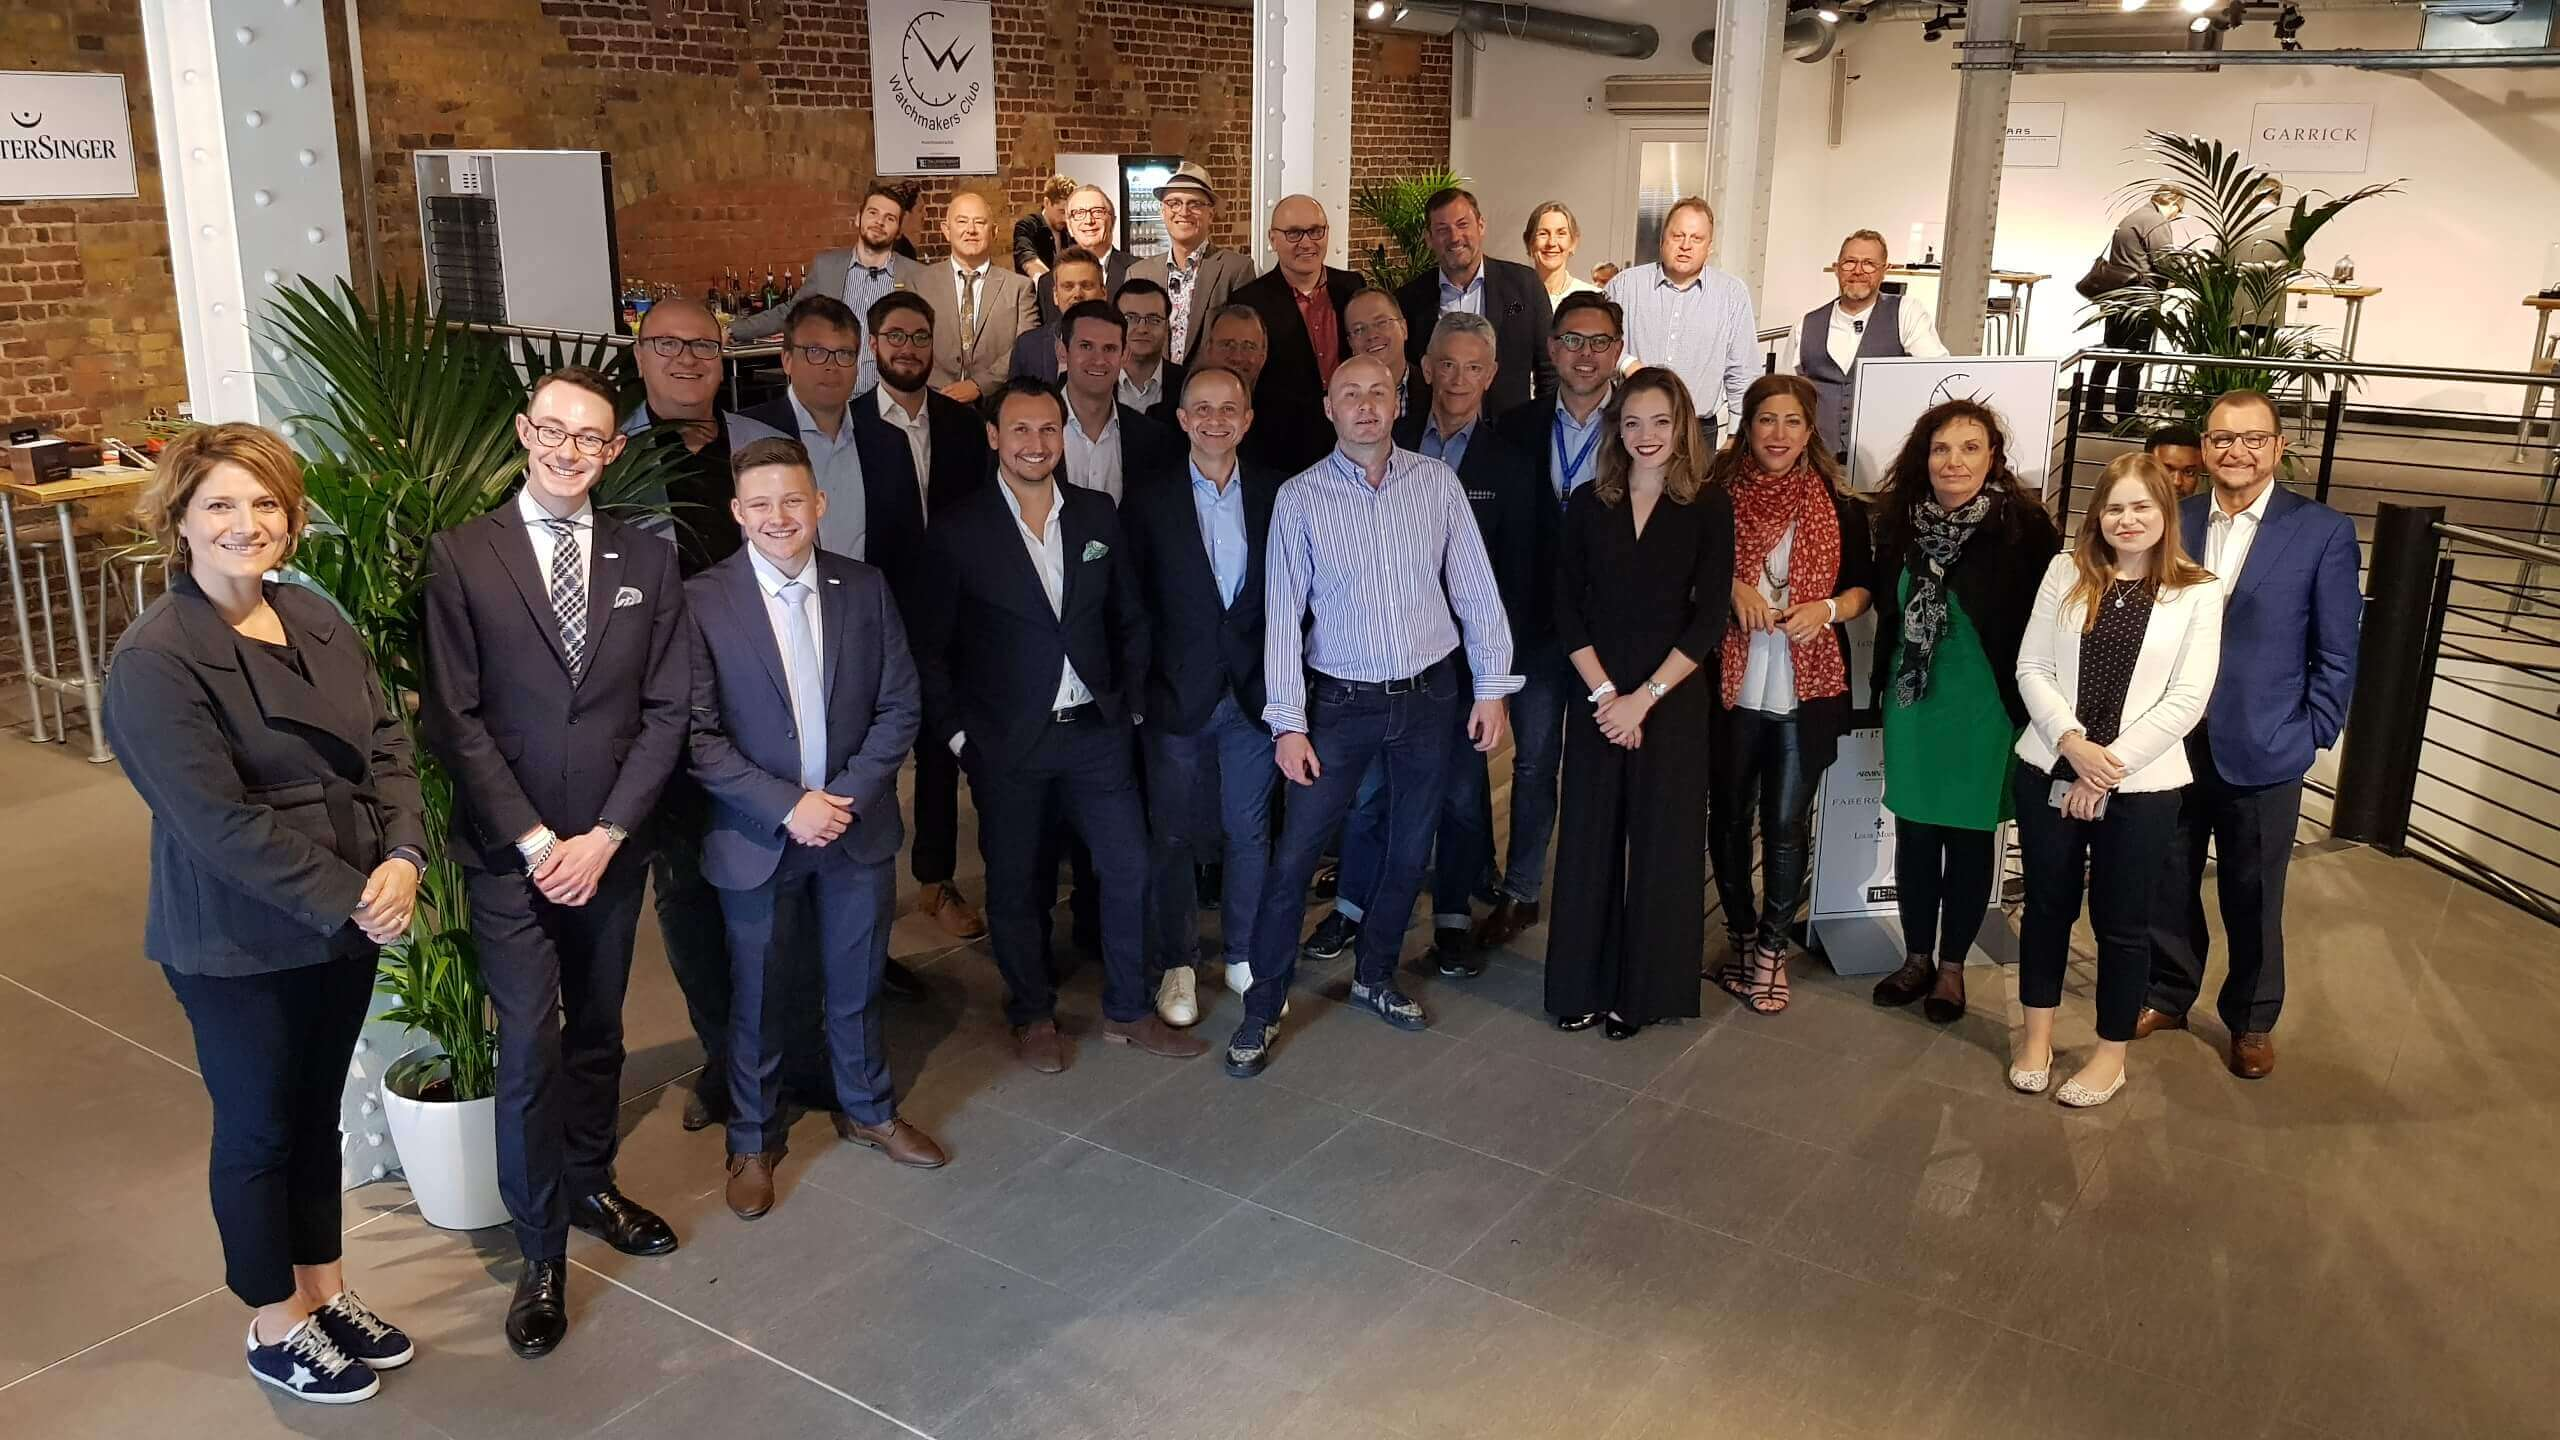 The Watchmakers Club 2019 event in London